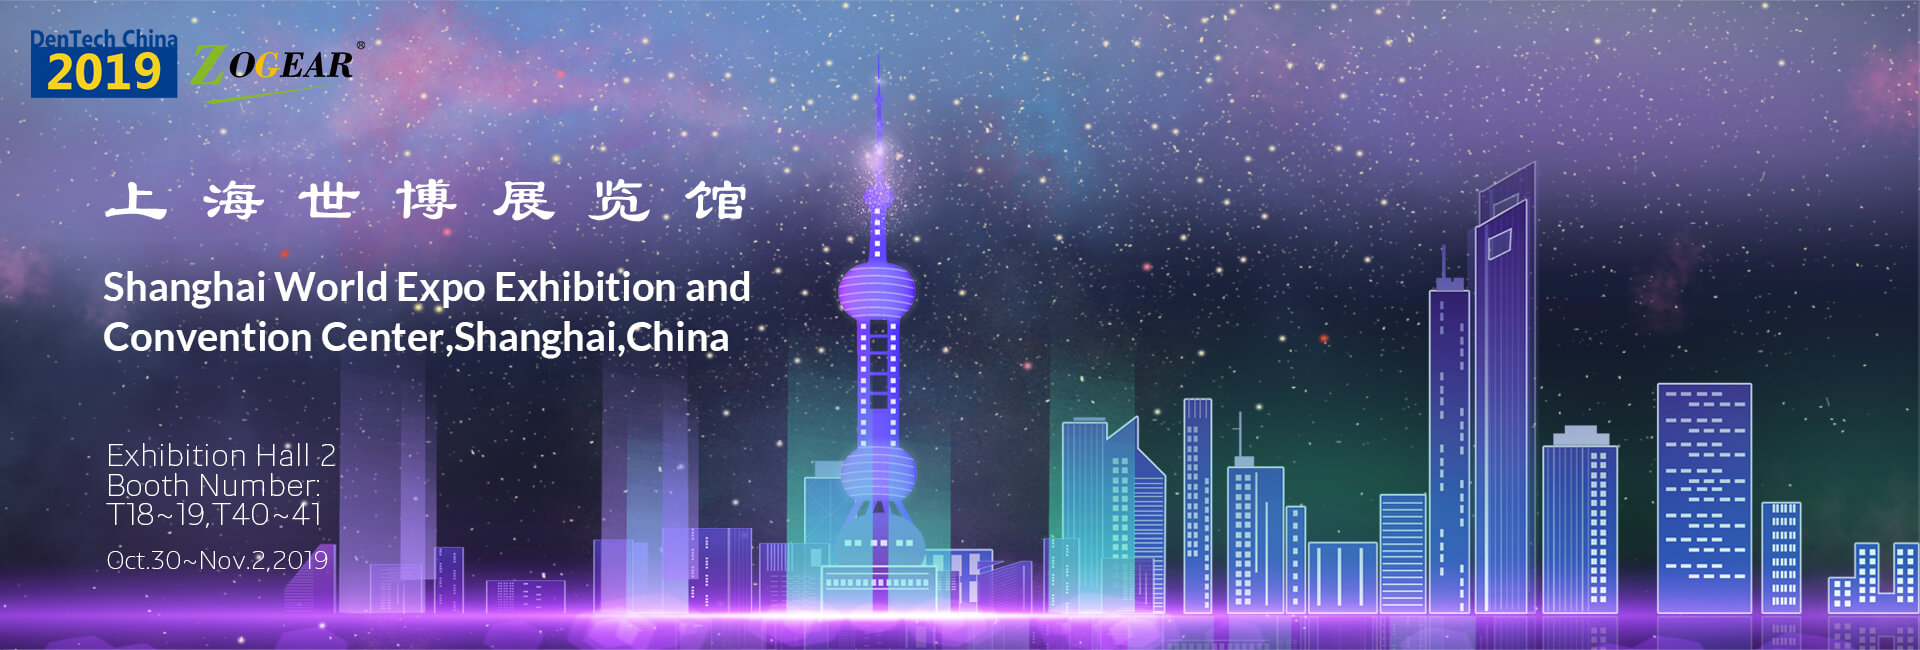 2019 DenTech exhibition in Shanghai